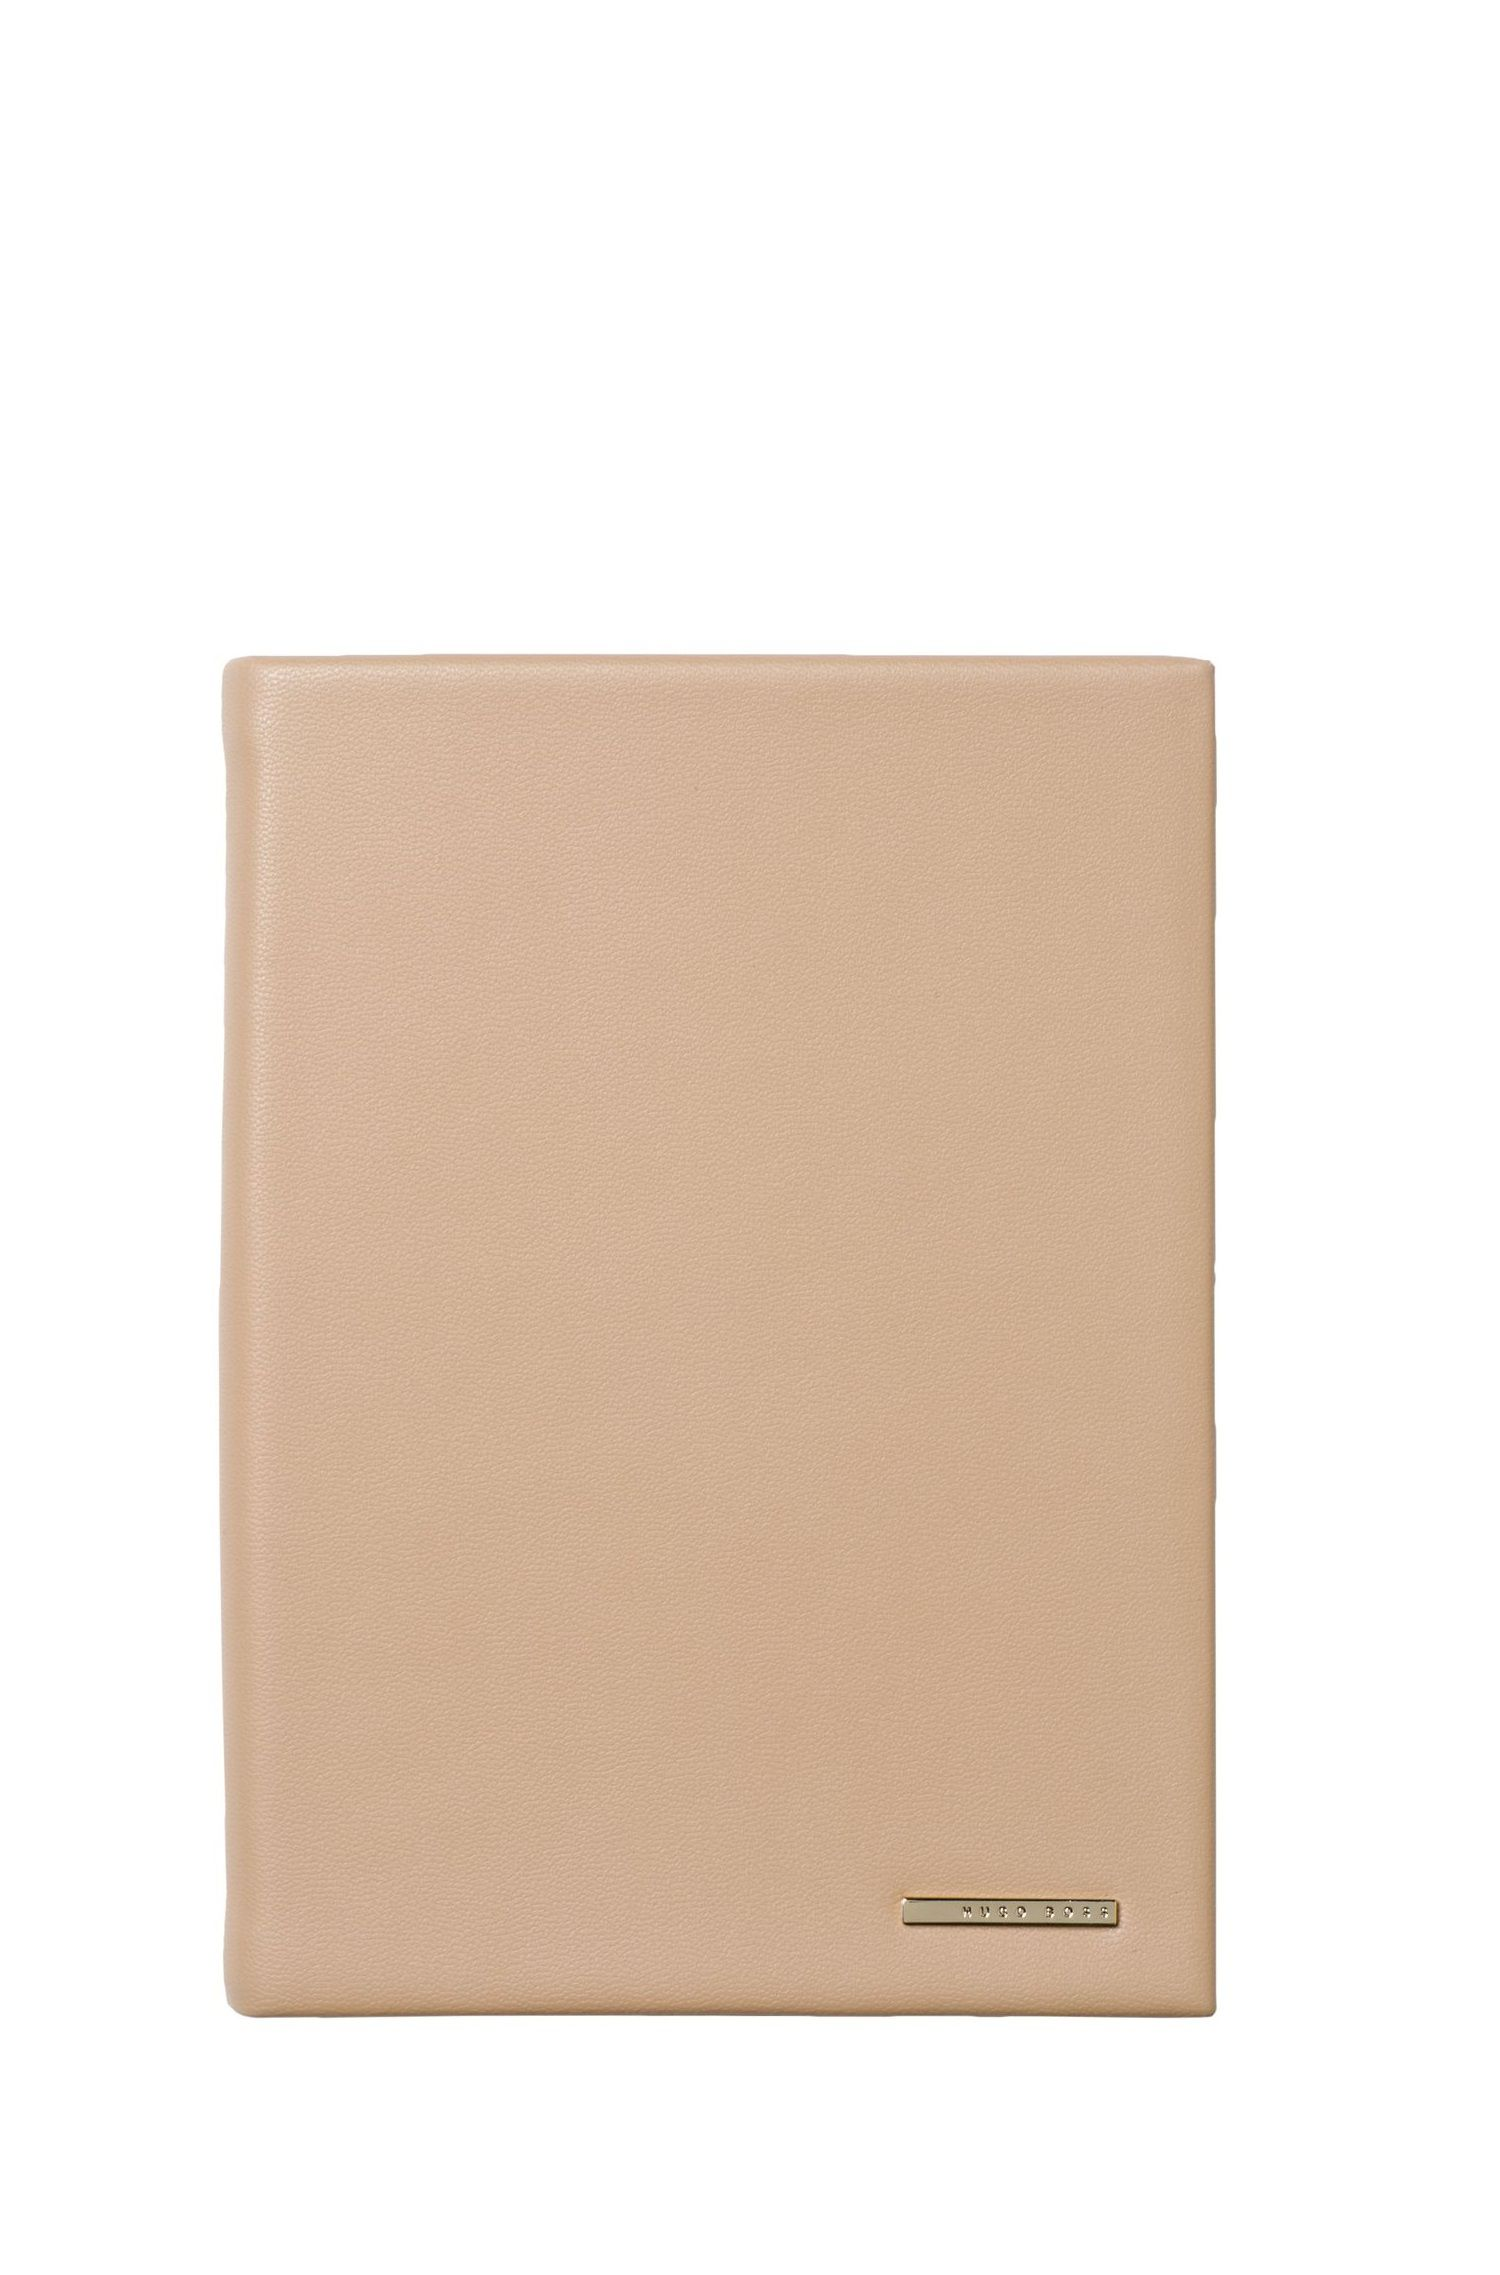 A6 notebook with nude faux-leather case and logo plate